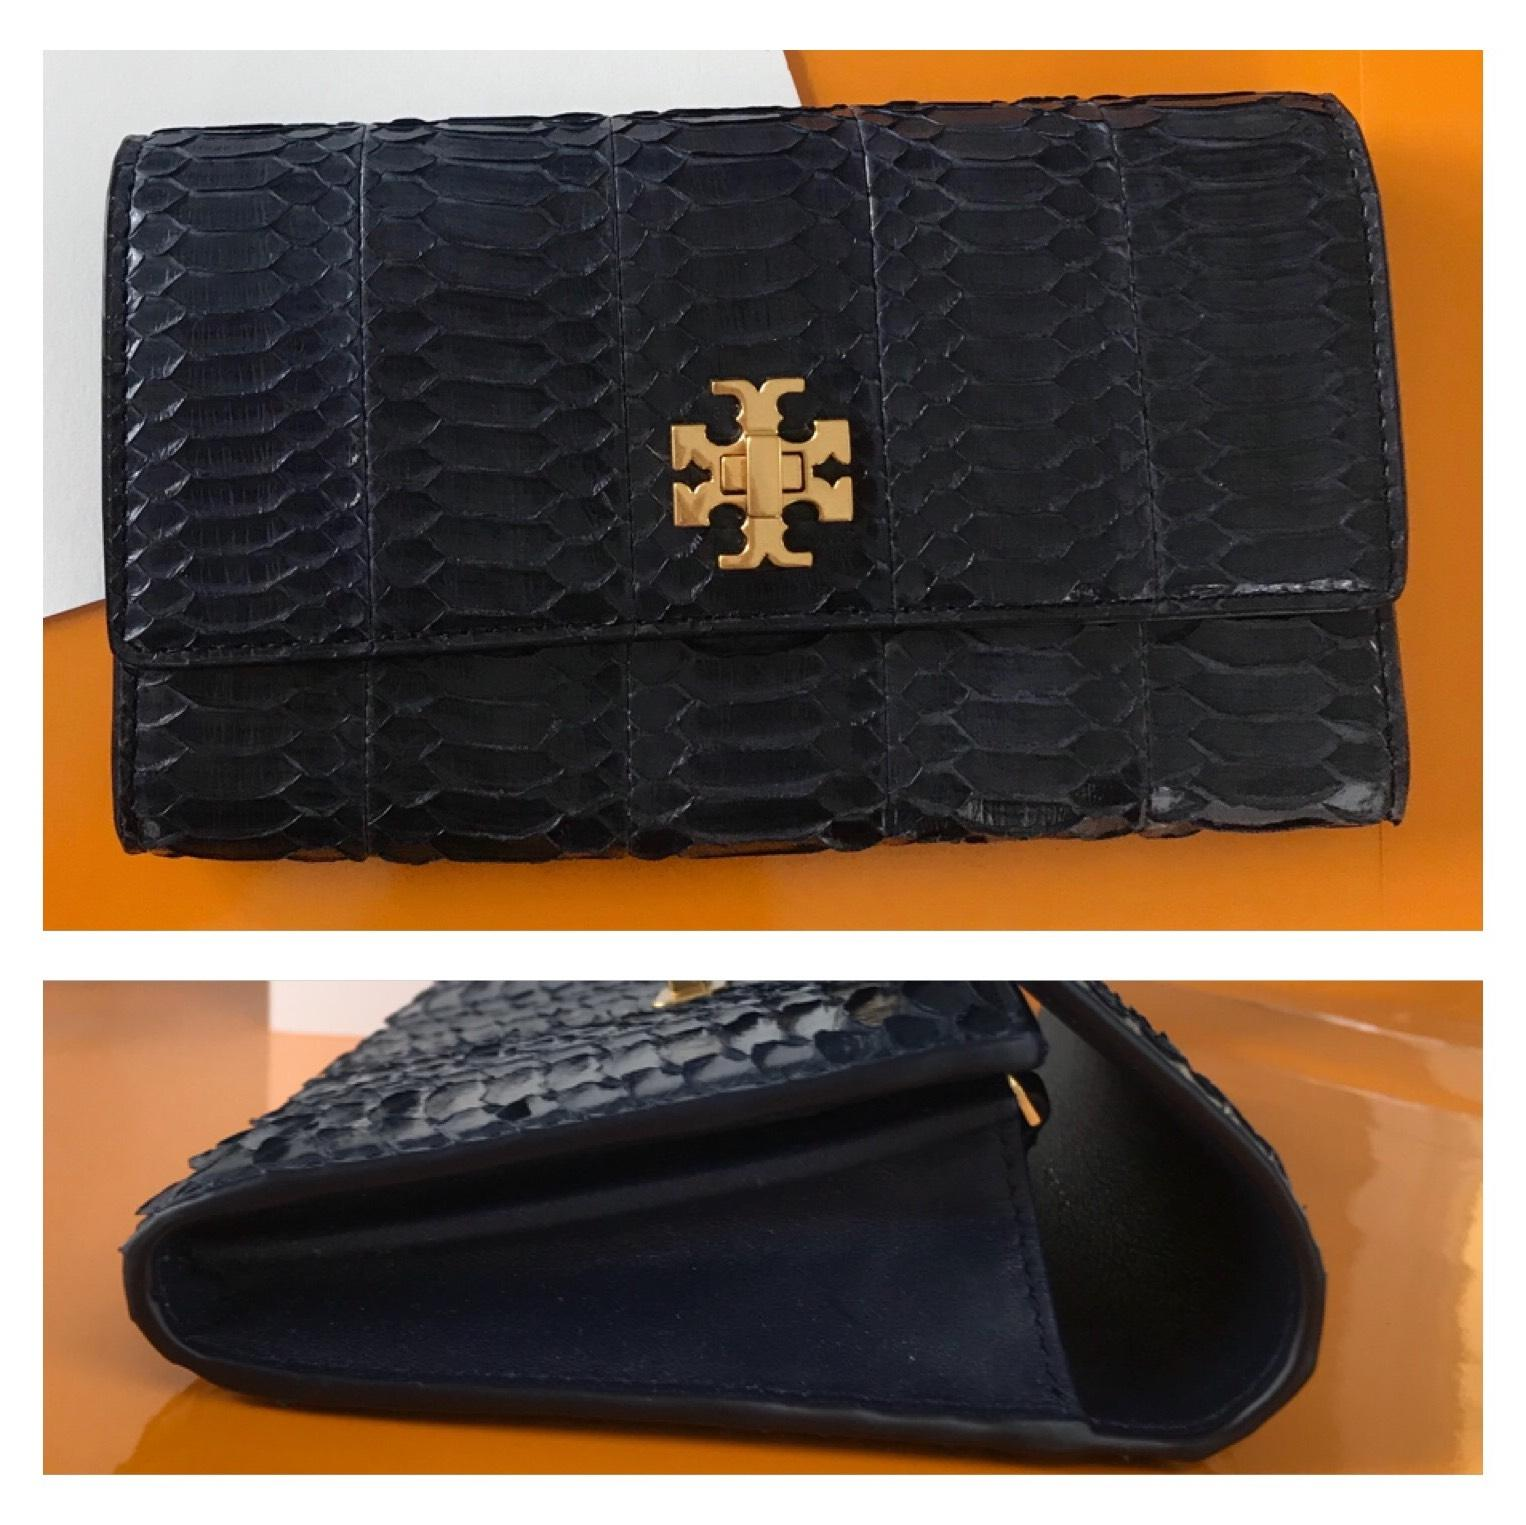 53b0f9bfe ... switzerland tory burch tory burch kira snake envelope continental  wallet 5afcd 7258e